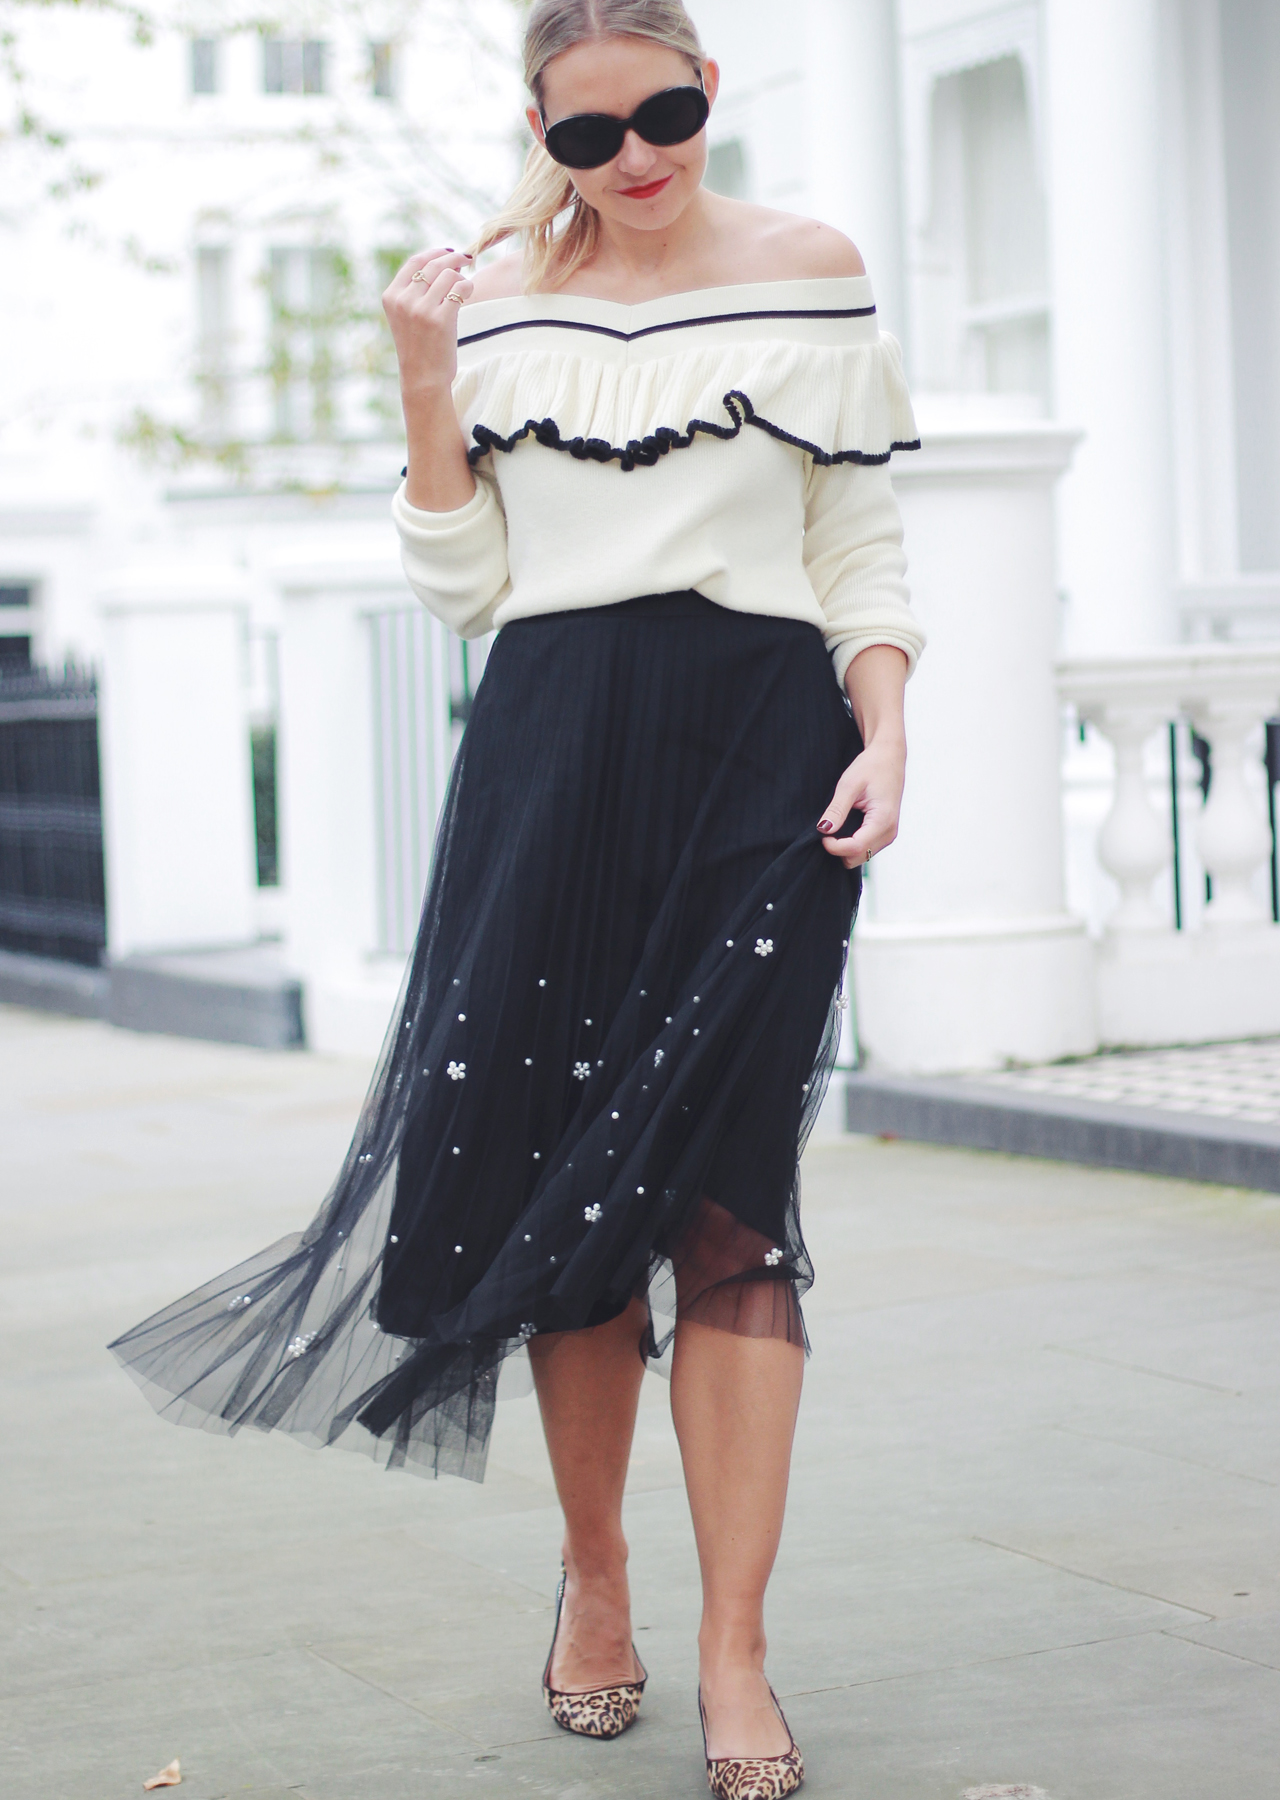 The Steele Maiden: Black and White Holiday Style - Anthropologie Pearl Tulle Skirt and Off the Shoulder Sweater